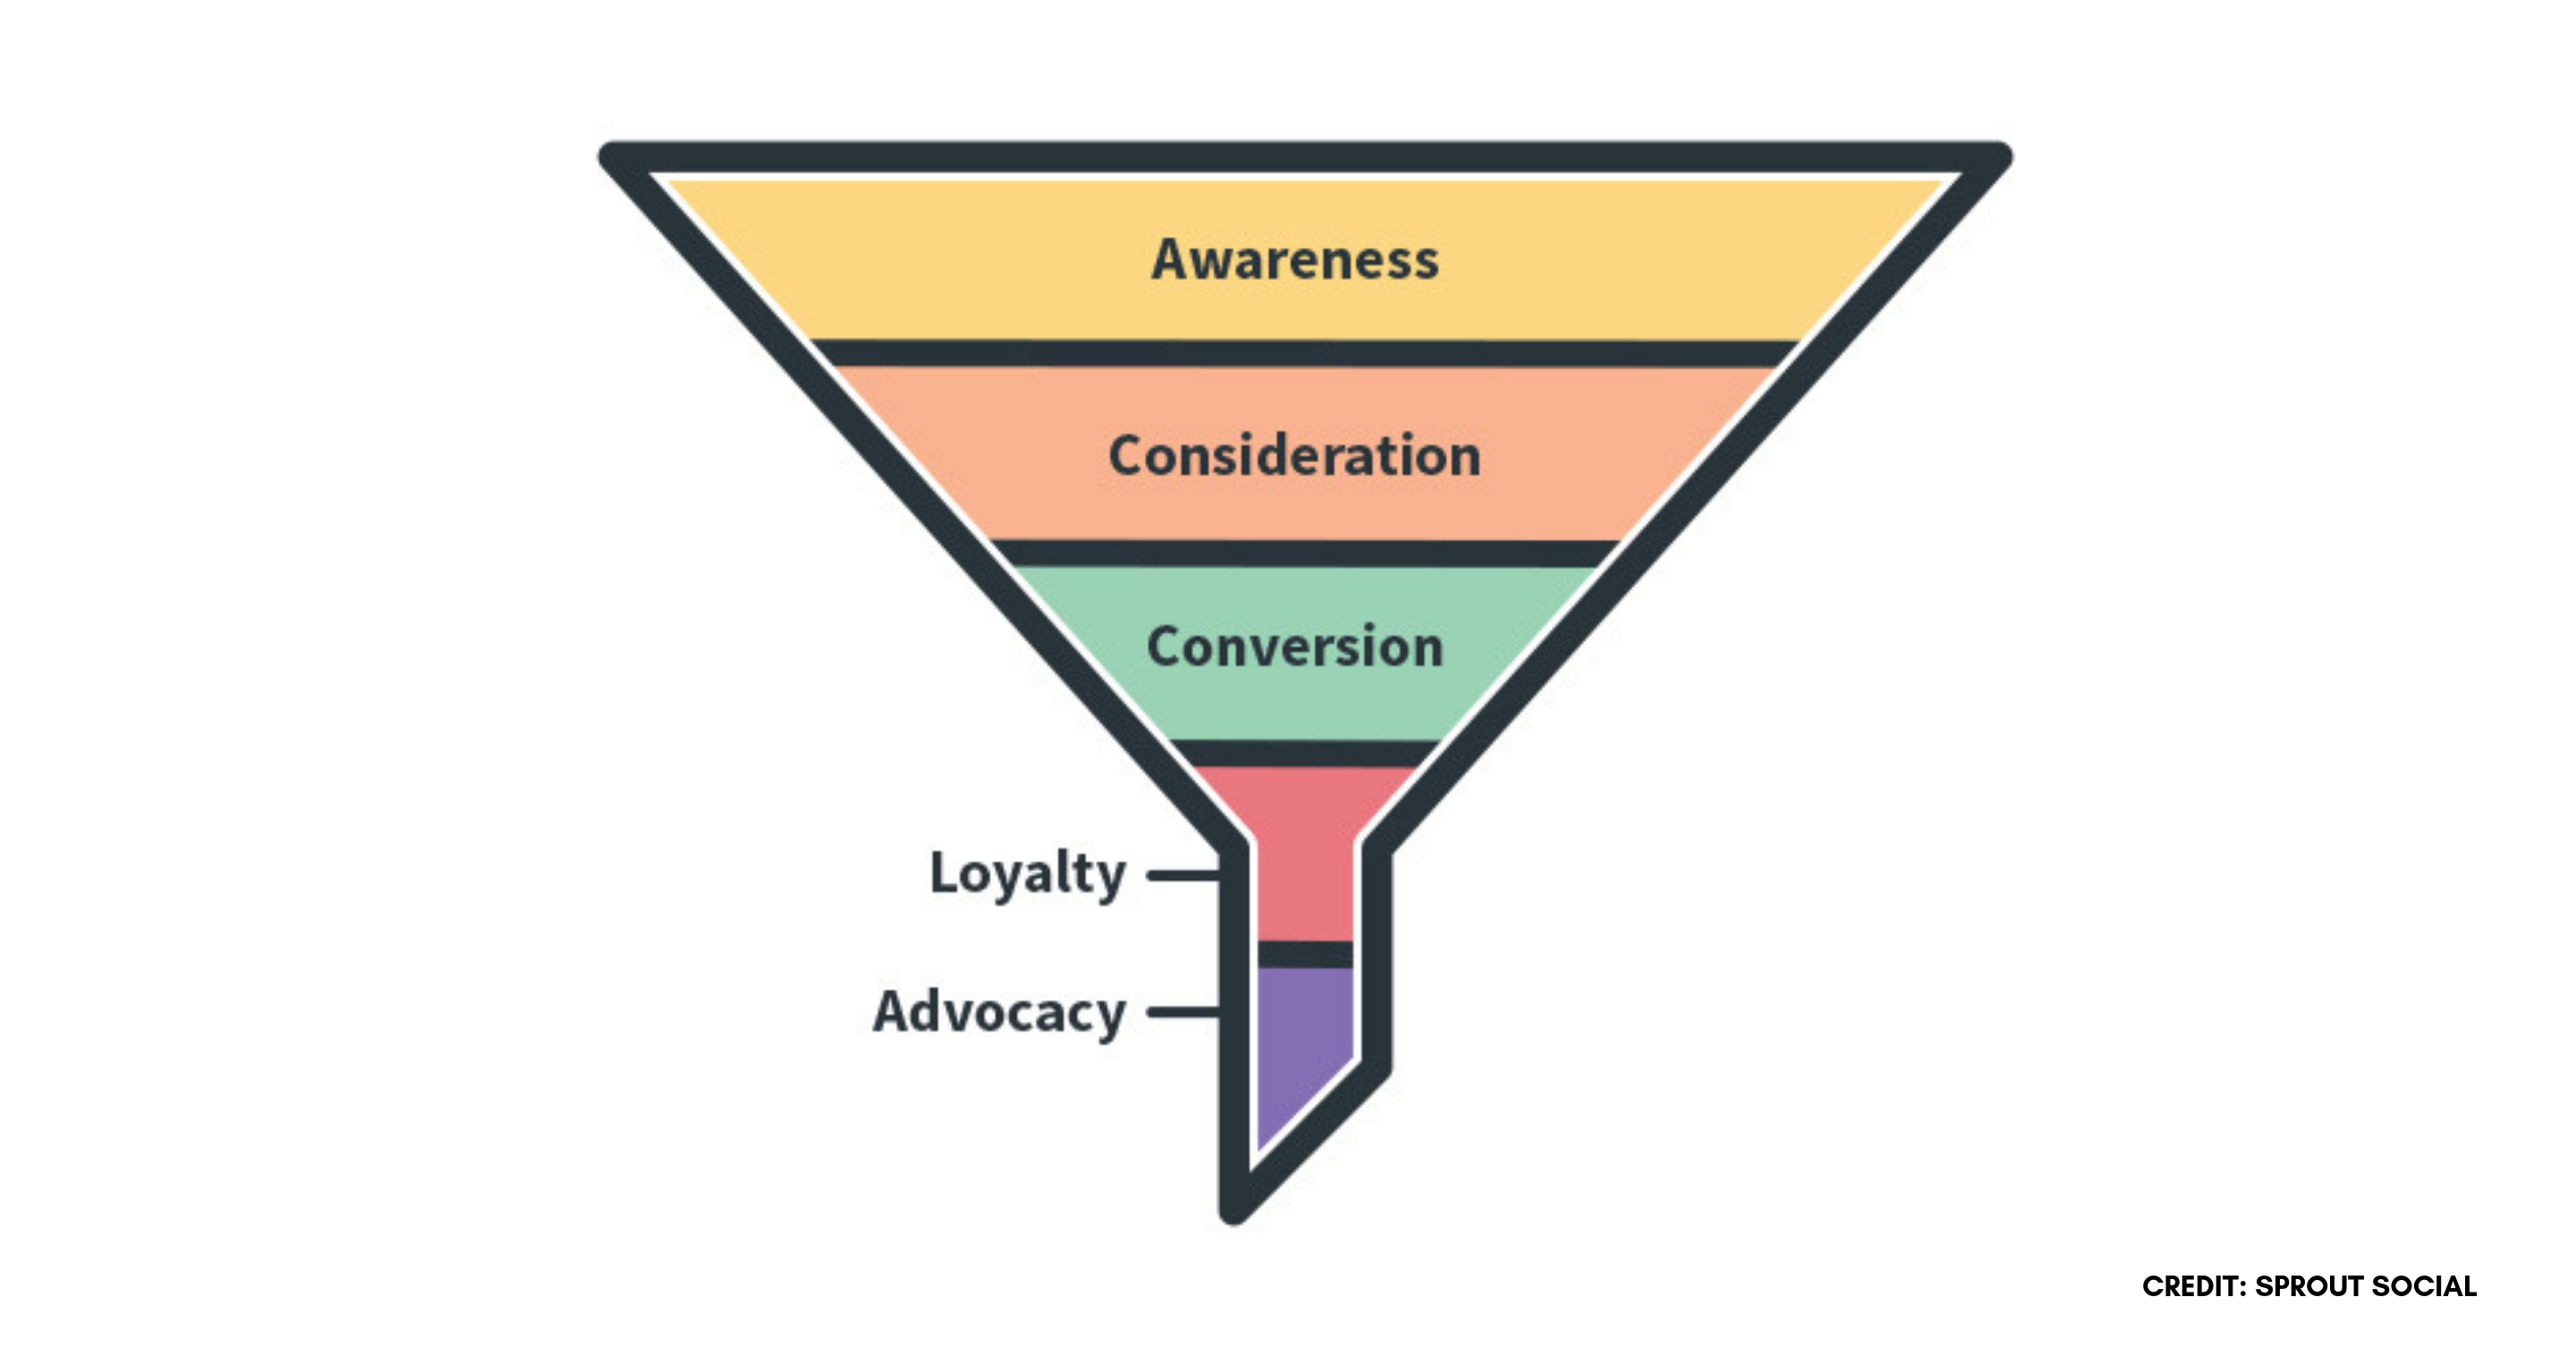 How to Build a Social Media Marketing Funnel That Converts